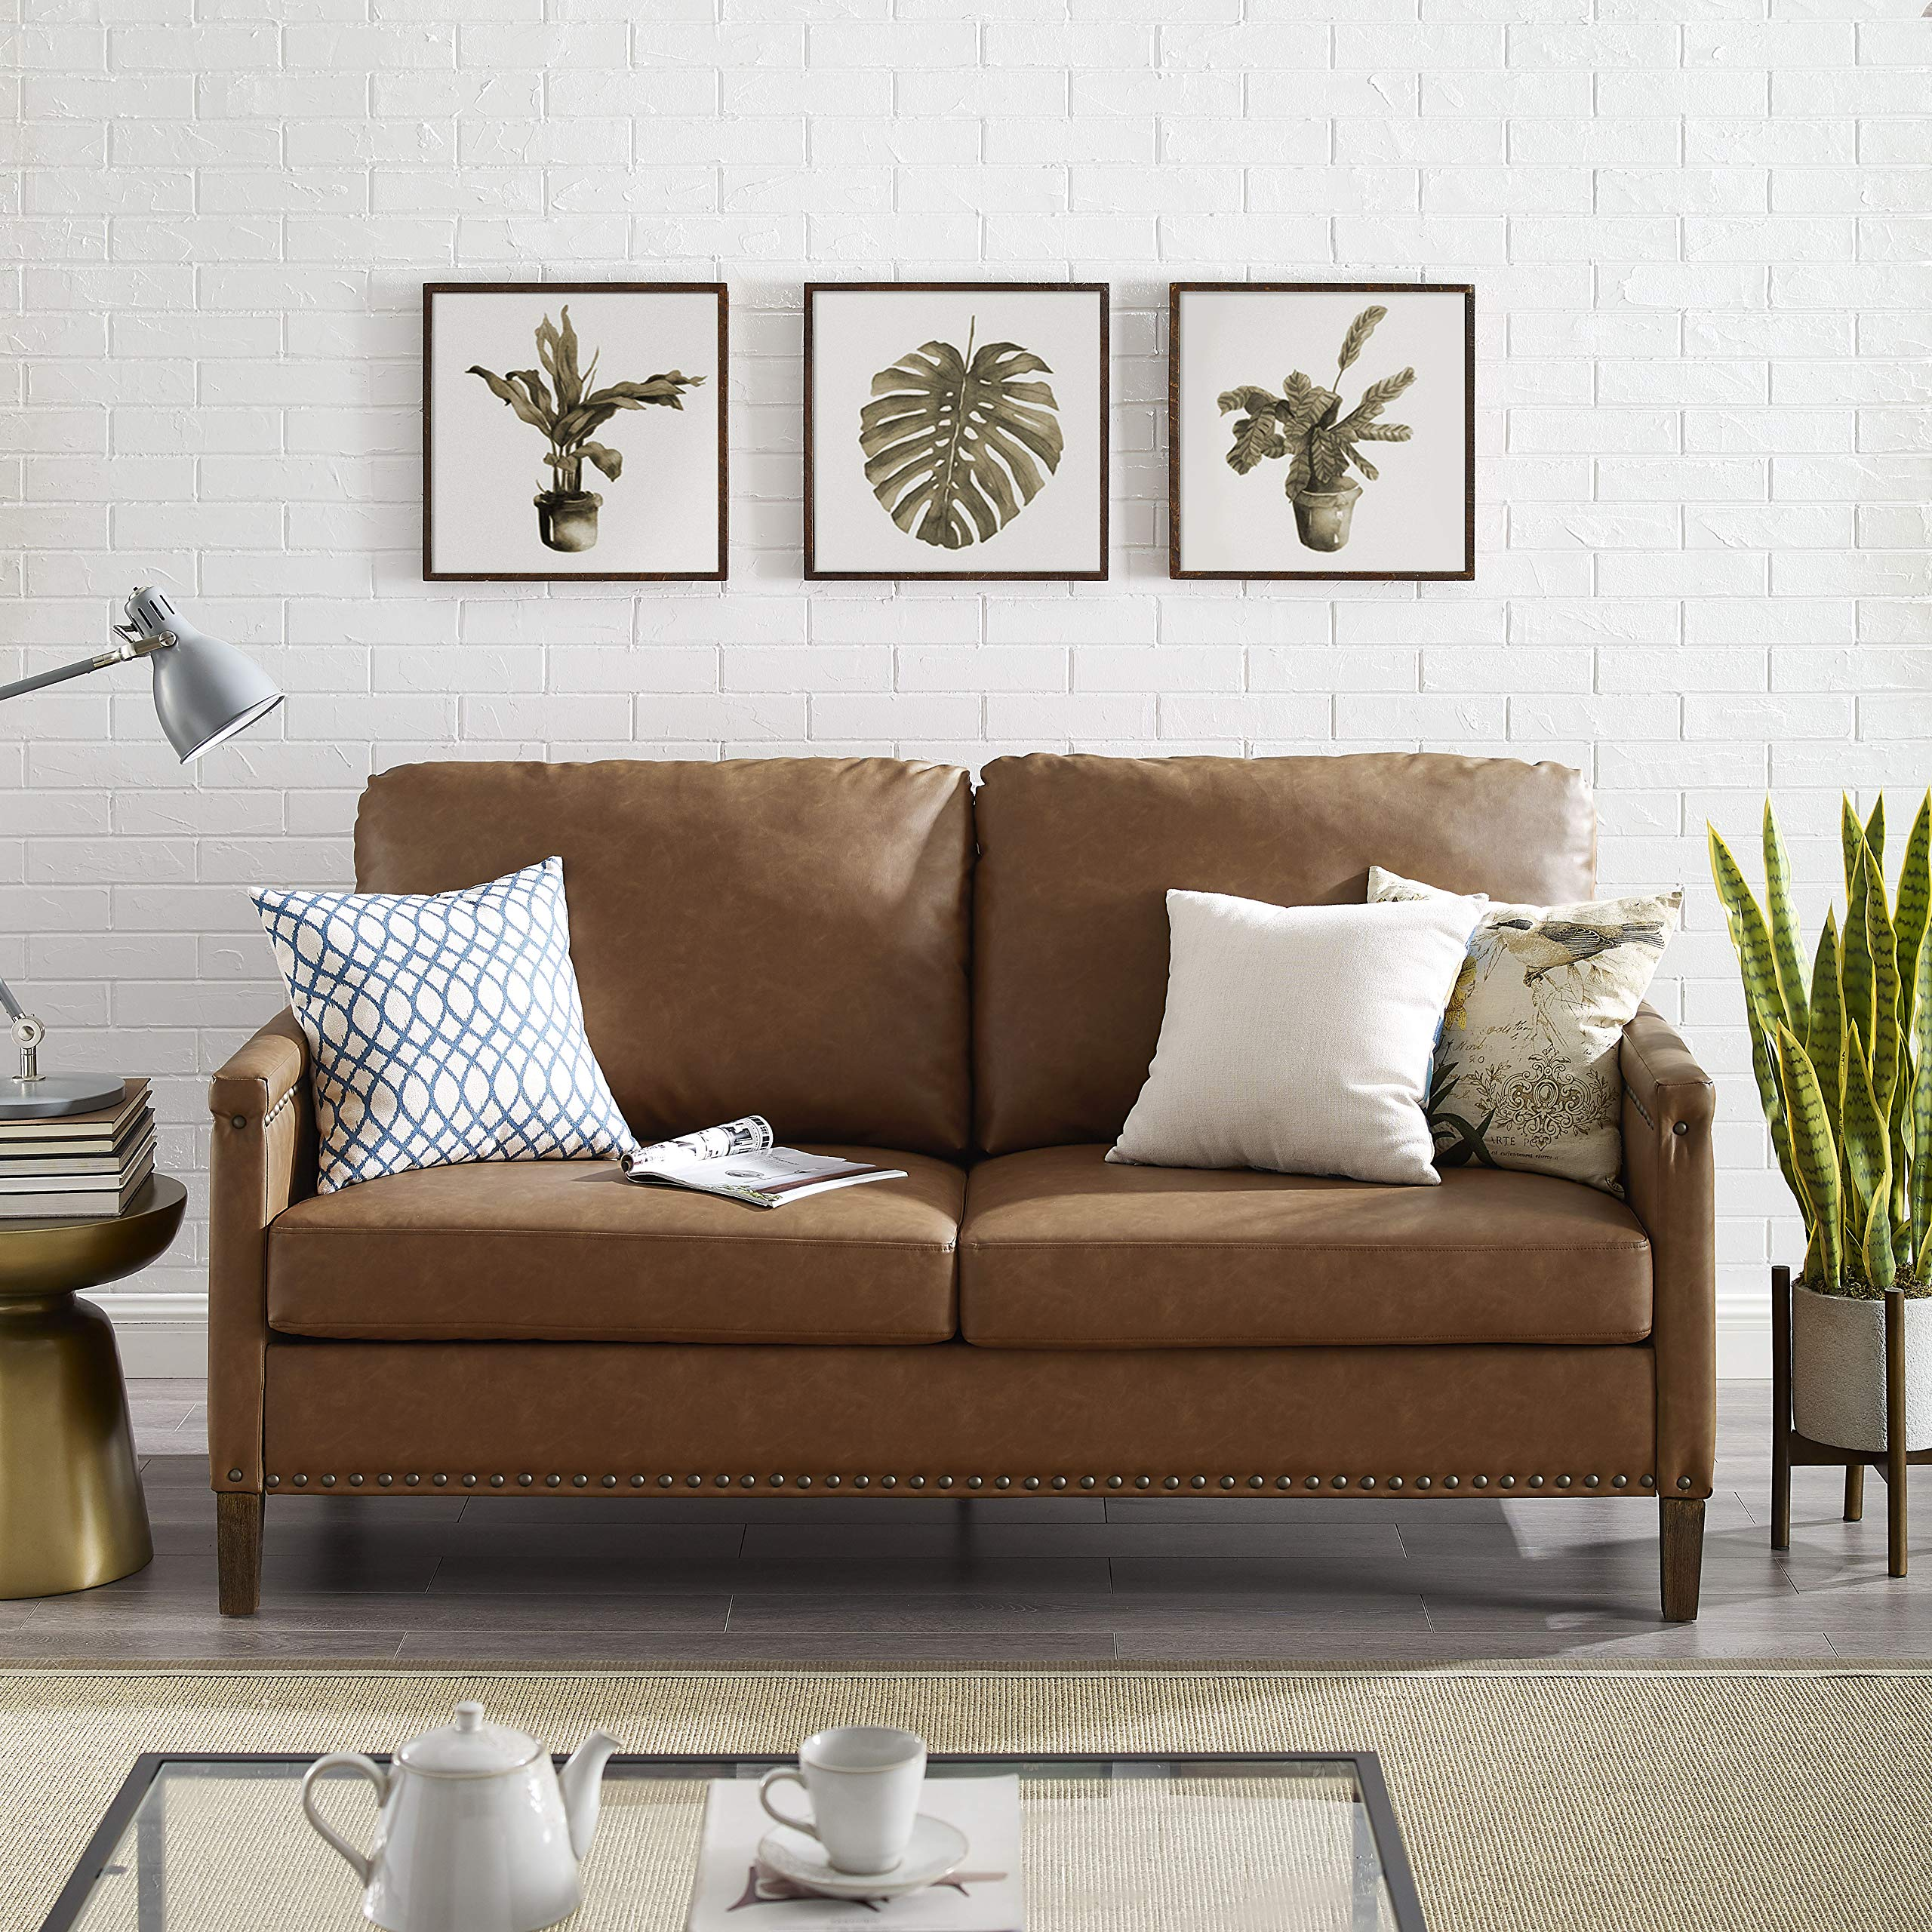 Elegant Apartment Upholstered Sofa with Nail Head Trim, Living Room, Office, Quality hardwood materials, Vintage Design, Seating for three, Sturdy design for long-lasting use, Brown color by Diversified Closet